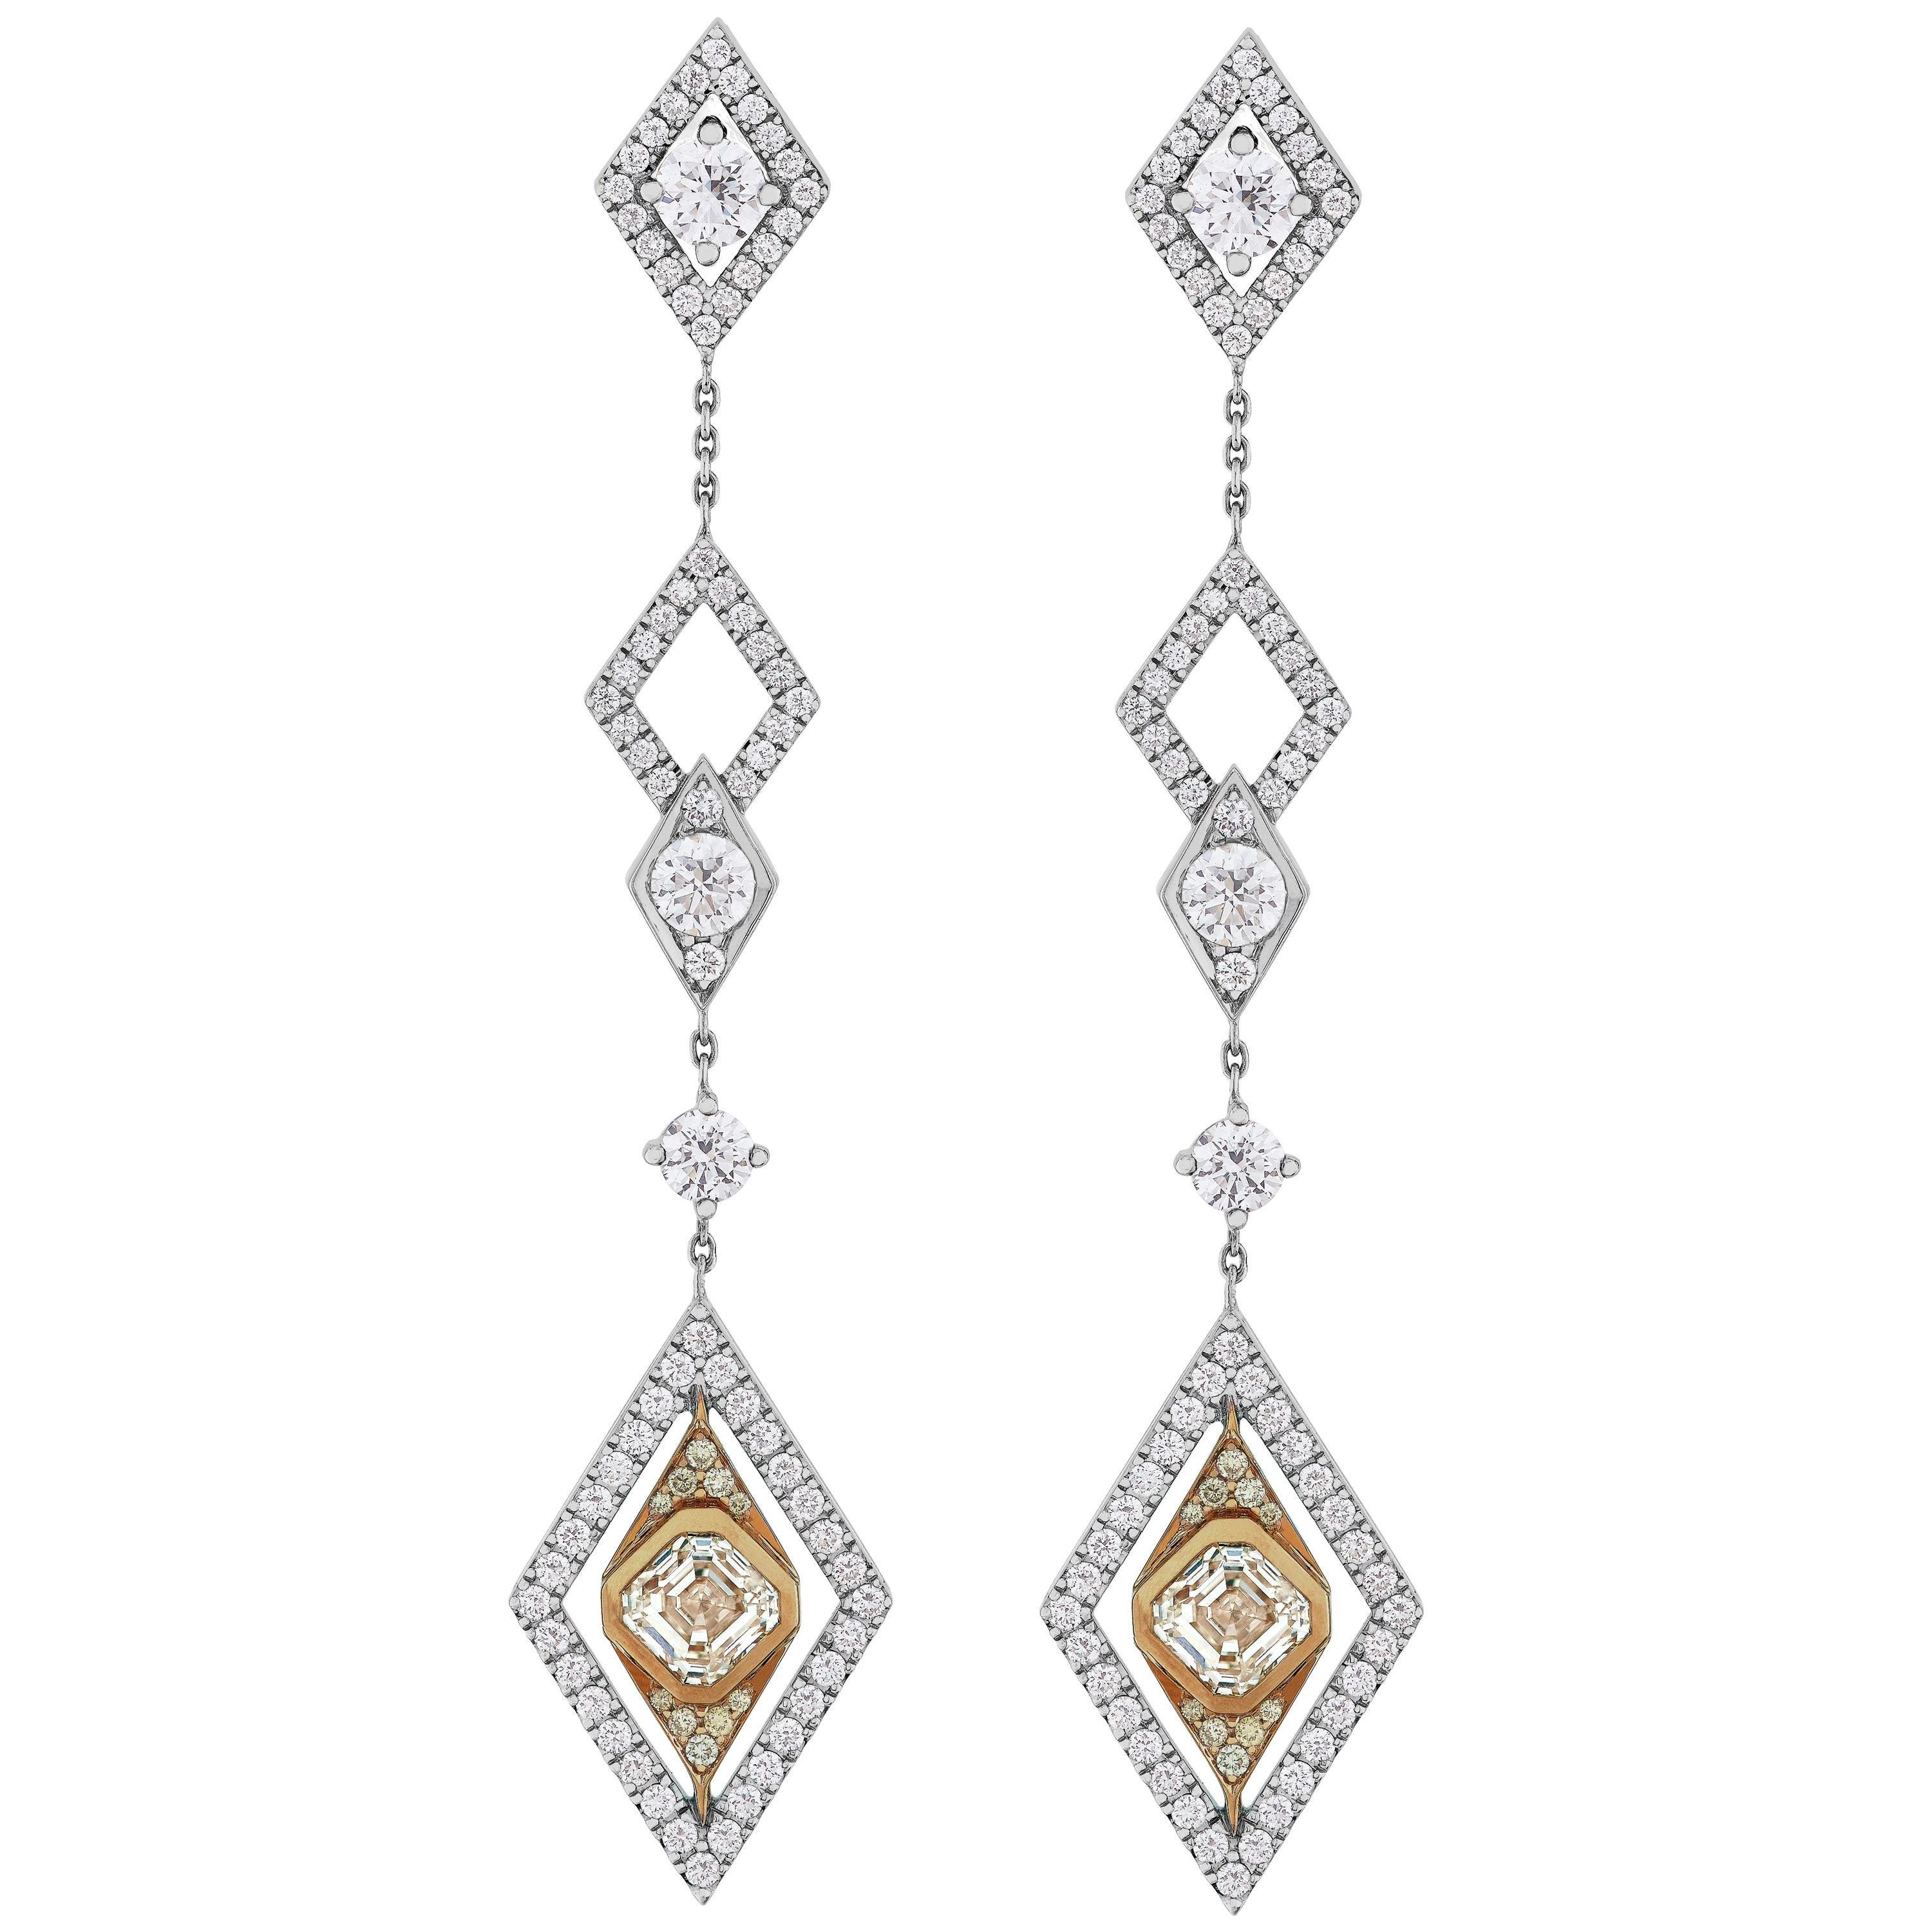 209a6a15d Garrard 4.89 Carat GIA White and Yellow Diamond Drop Chandelier Earrings  For Sale at 1stdibs